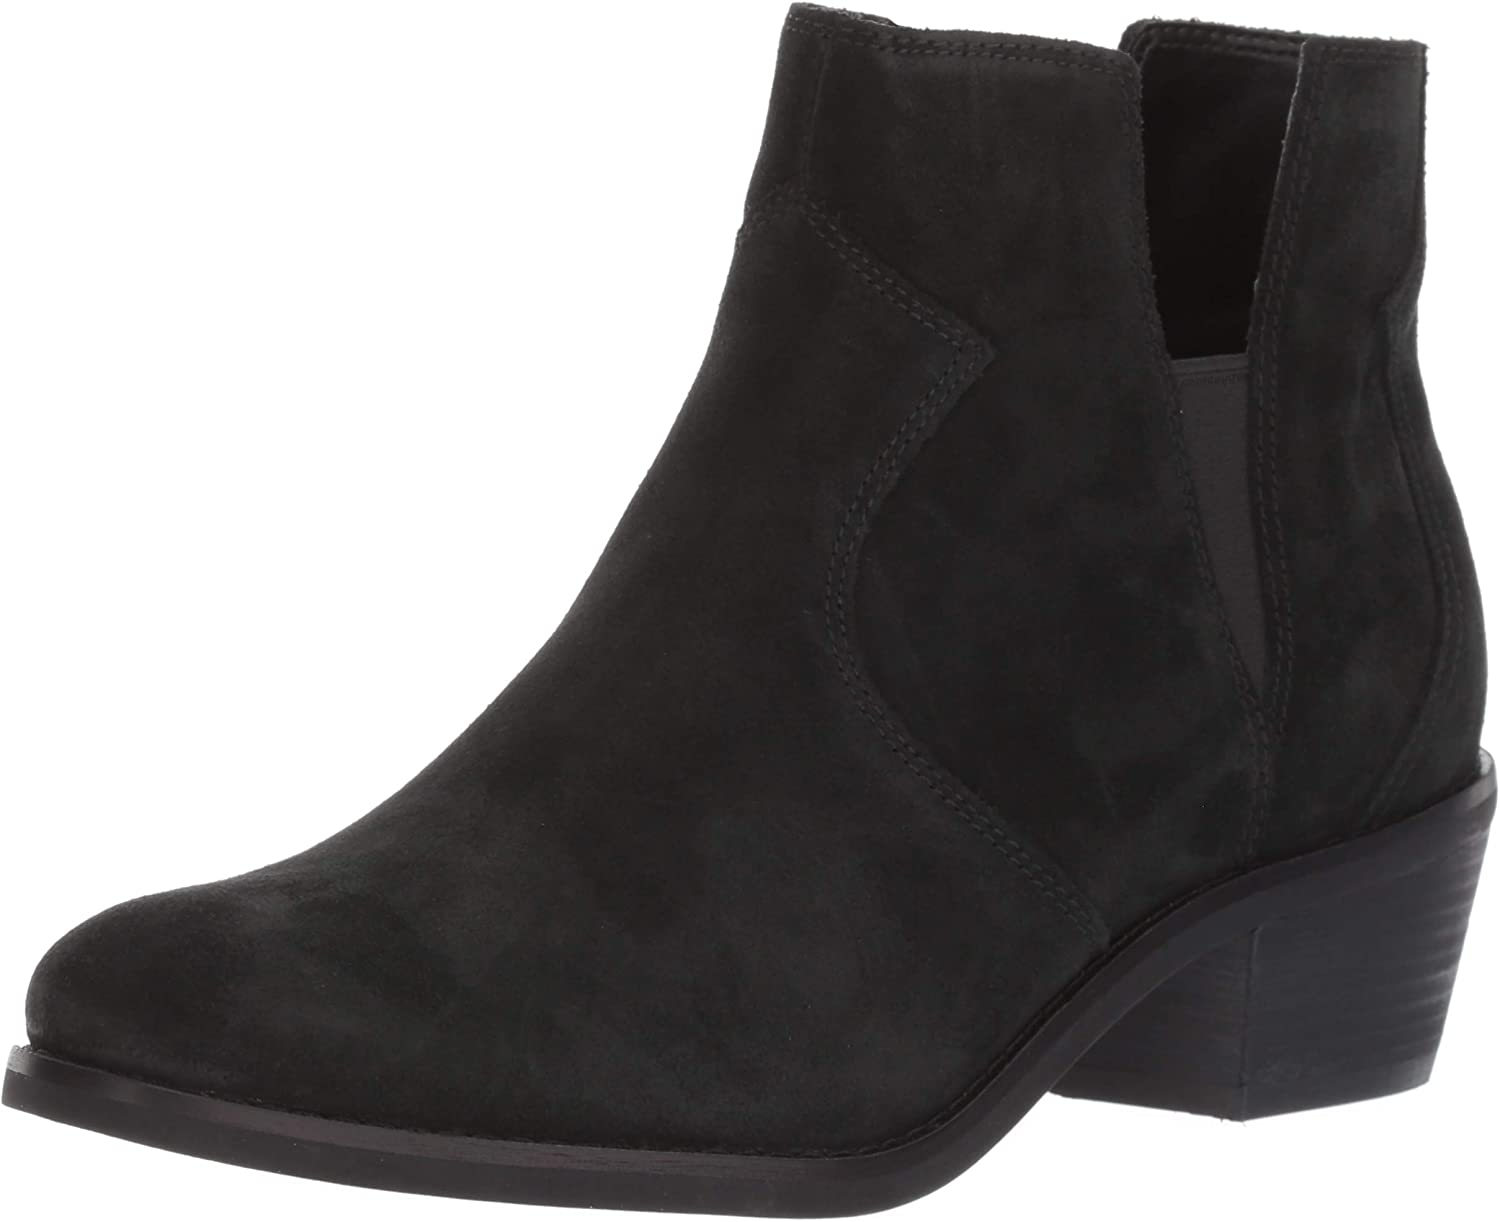 Cole Haan Womens Alayna Bootie Ii Ankle Boot